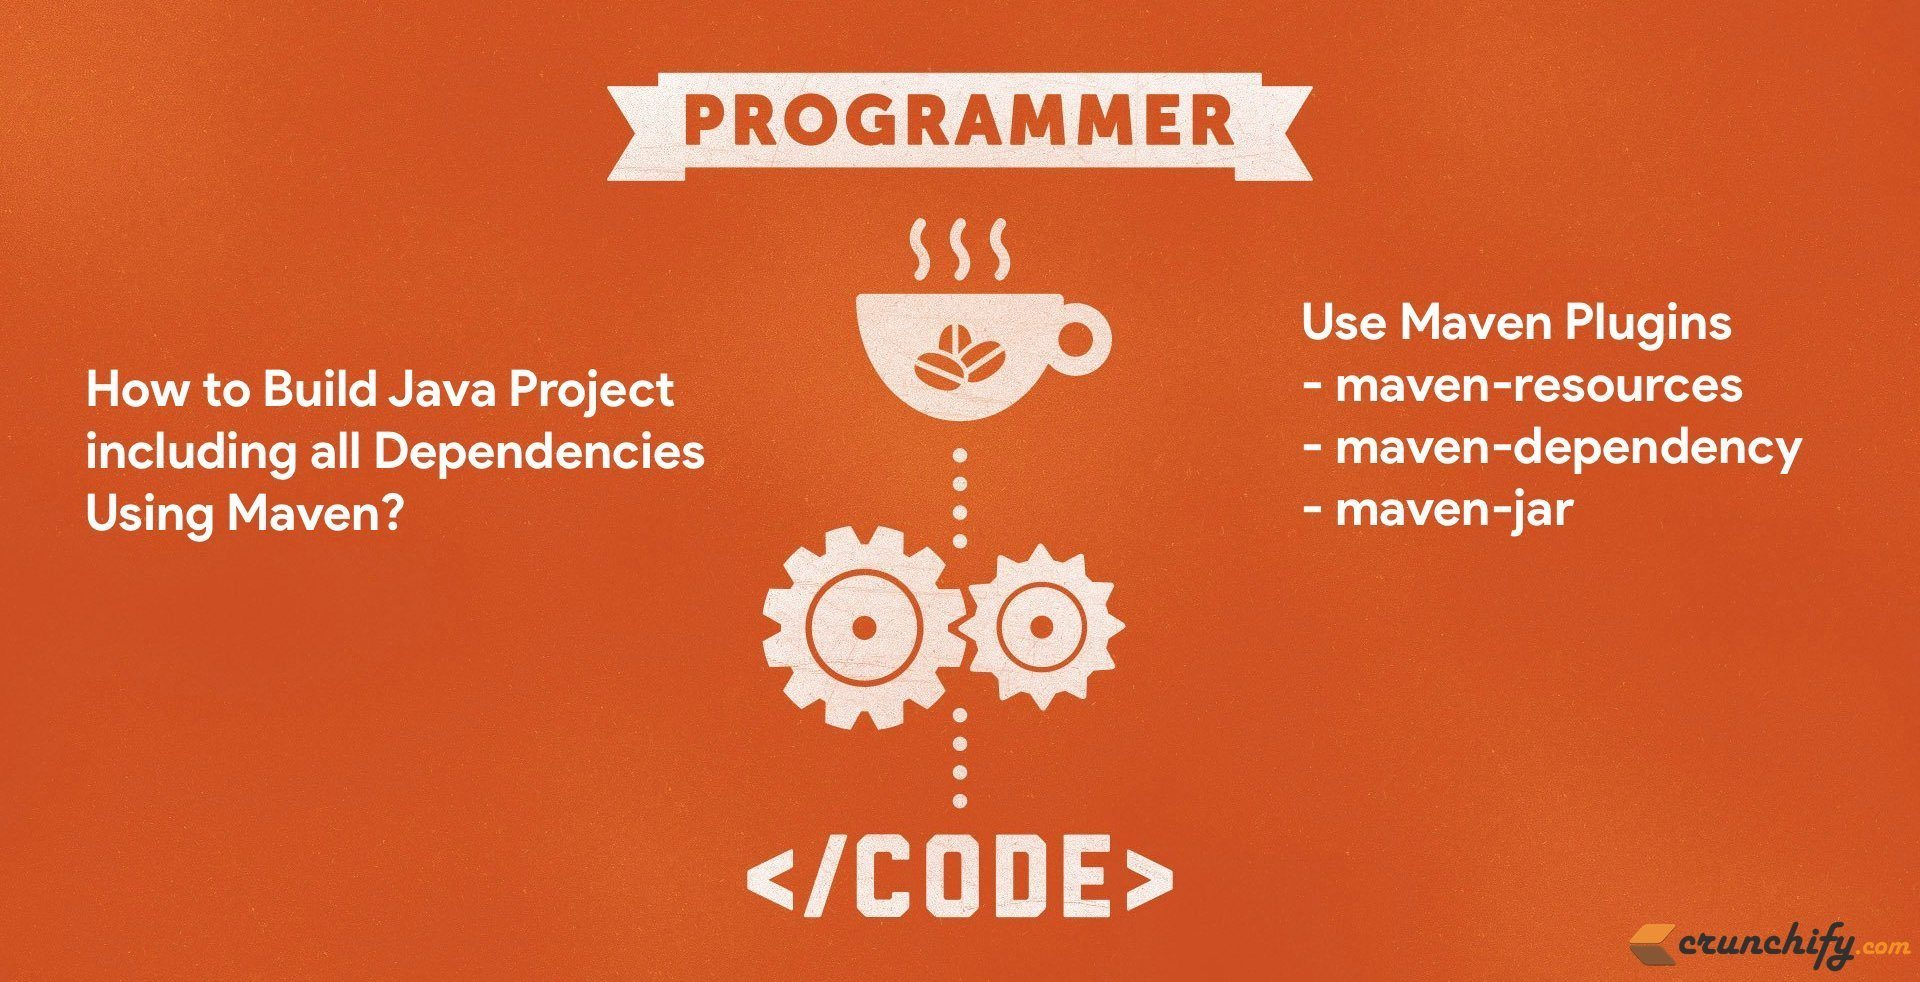 build-java-project-including-all-dependencies-using-maven-maven-resources-maven-dependency-and-maven-jar-plugins